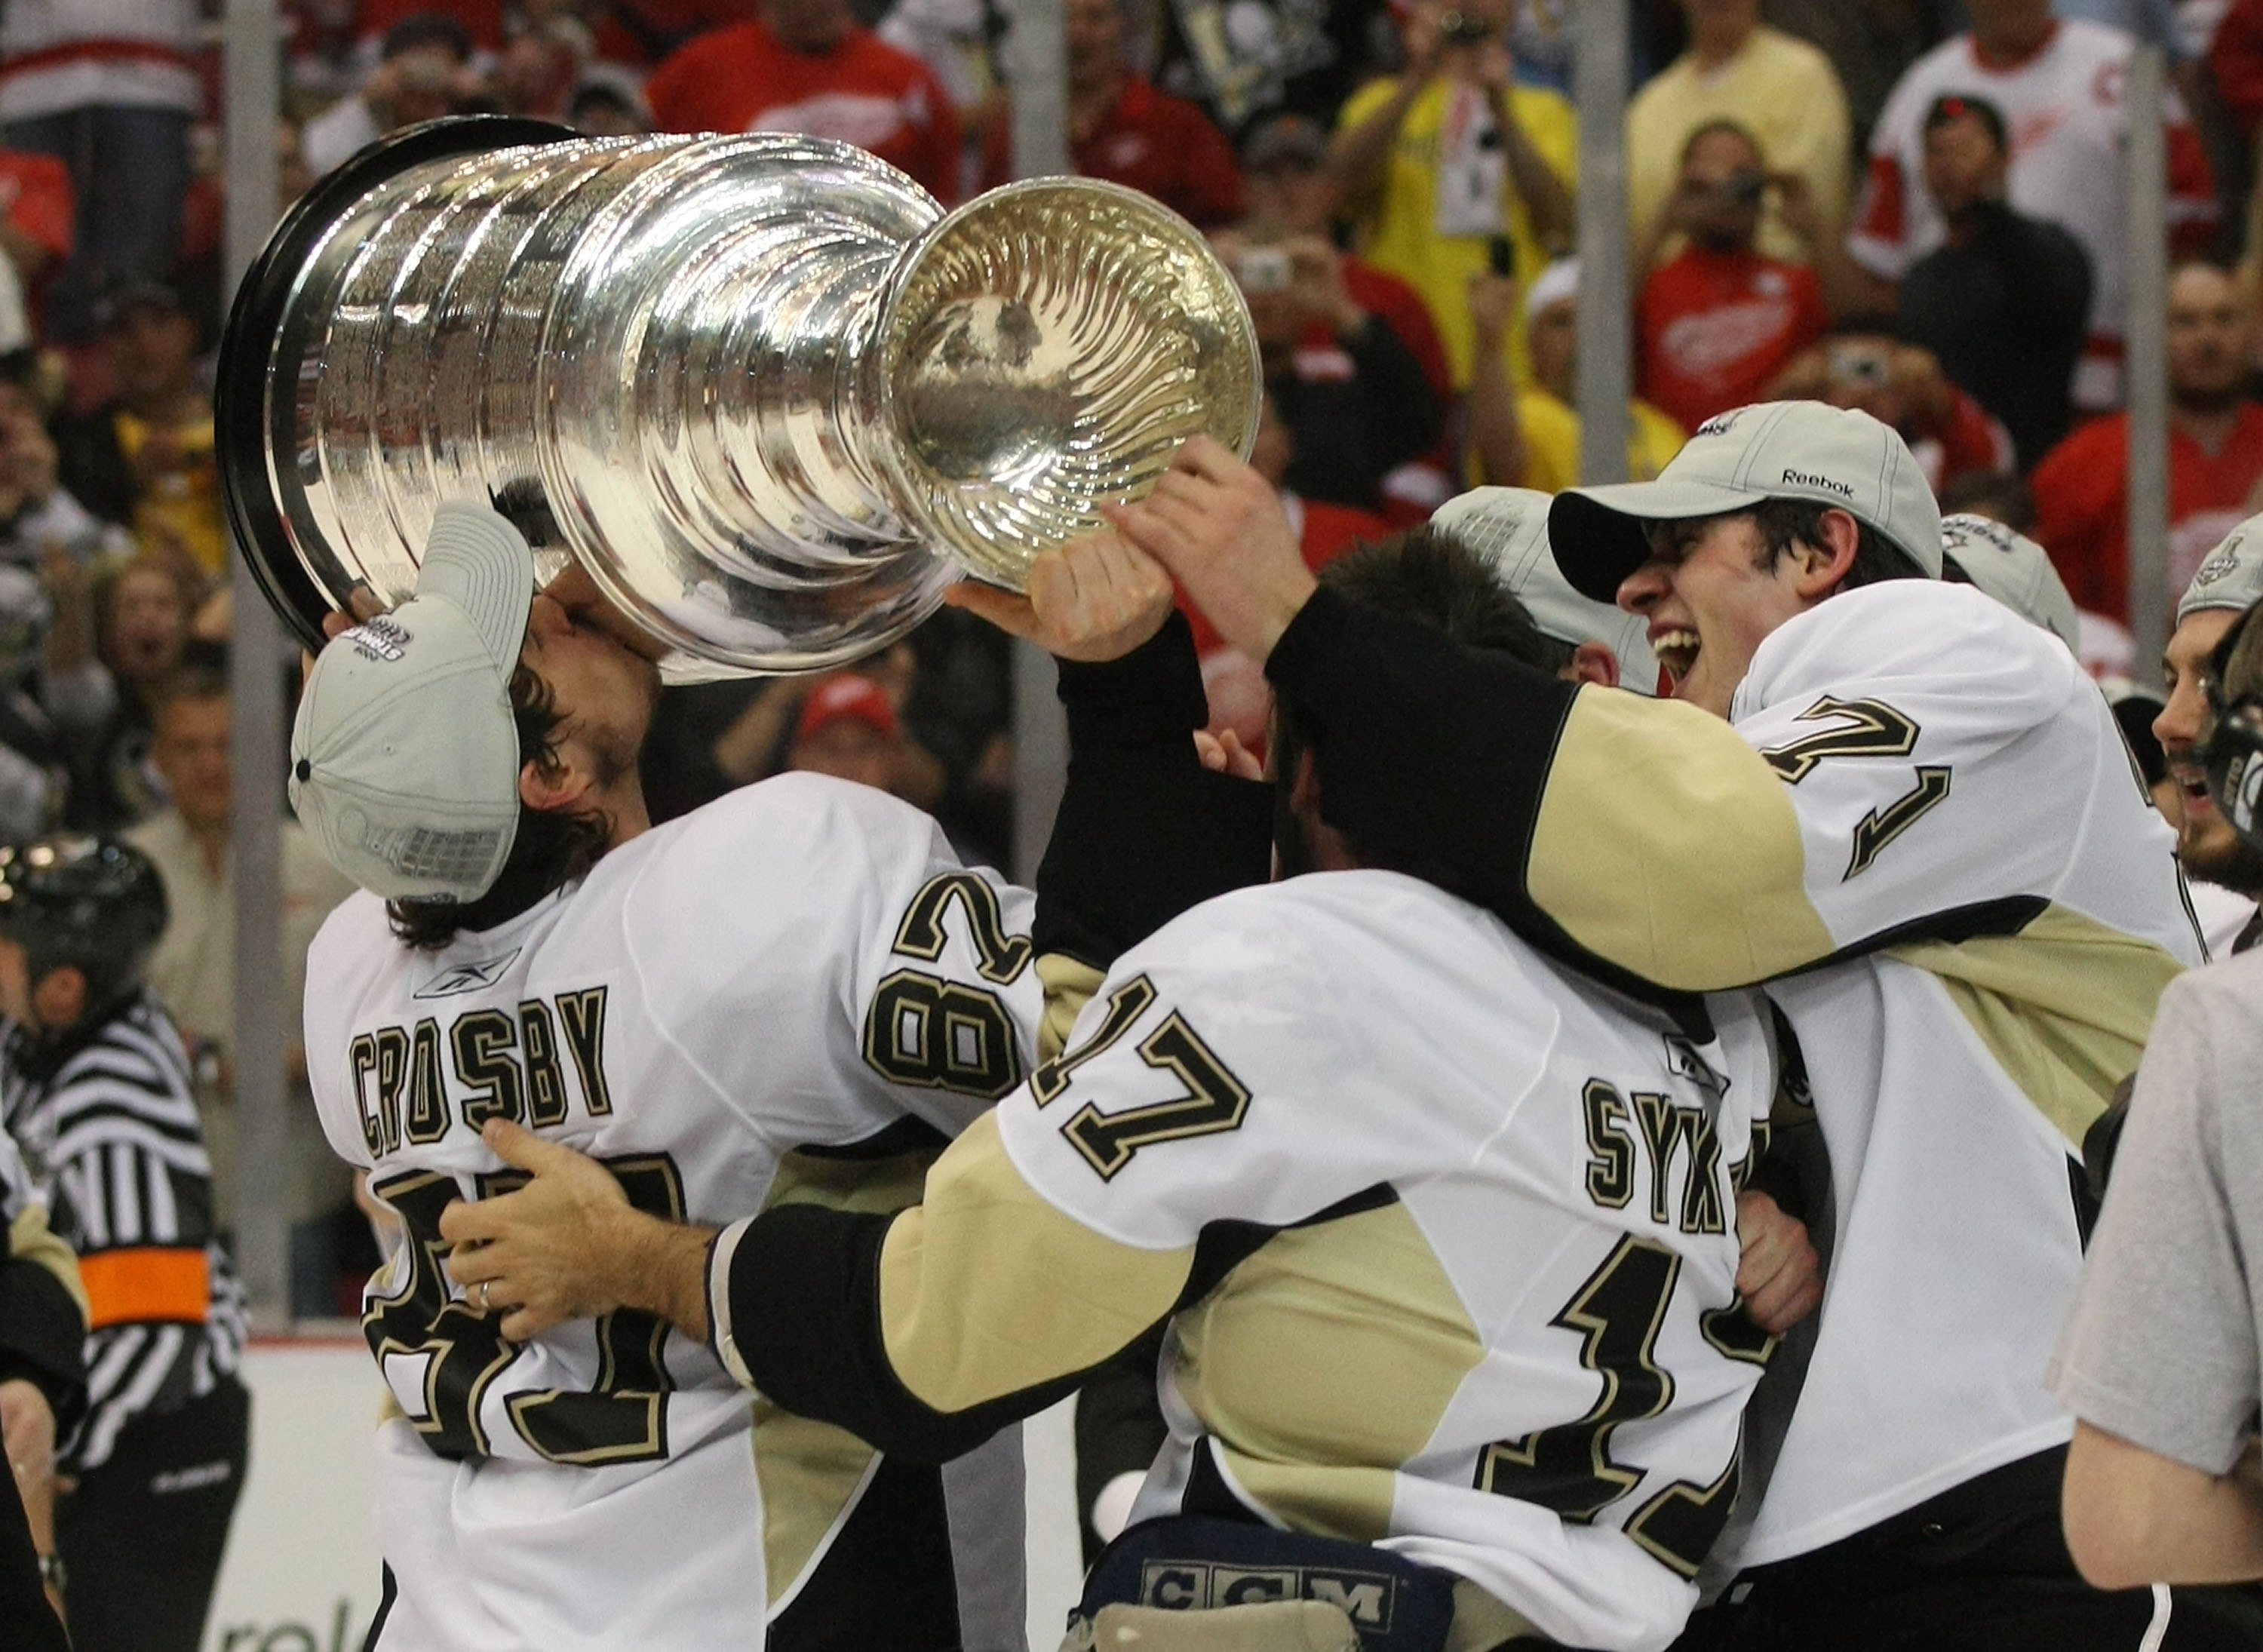 DETROIT - JUNE 12: (L-R) Sideny Crosby #87, Petr Sykora #17 and Evgeni Malkin #71 of the Pittsburgh Penguins hold  the Stanley Cup following the Penguins victory over the Detroit Red Wings in Game Seven of the 2009 NHL Stanley Cup Finals at Joe Louis Aren